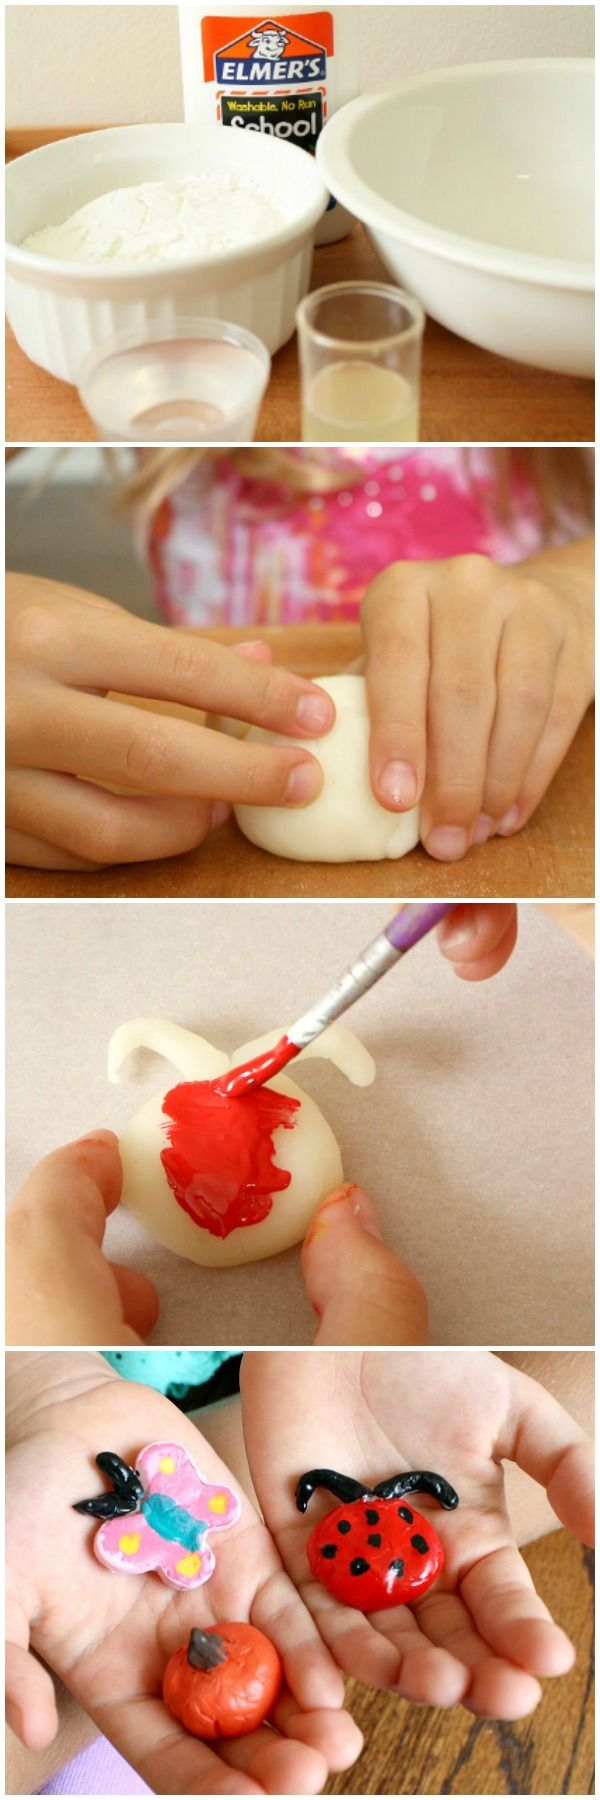 DIY Air Dry Clay Recipe for Craft Projects Diy air dry